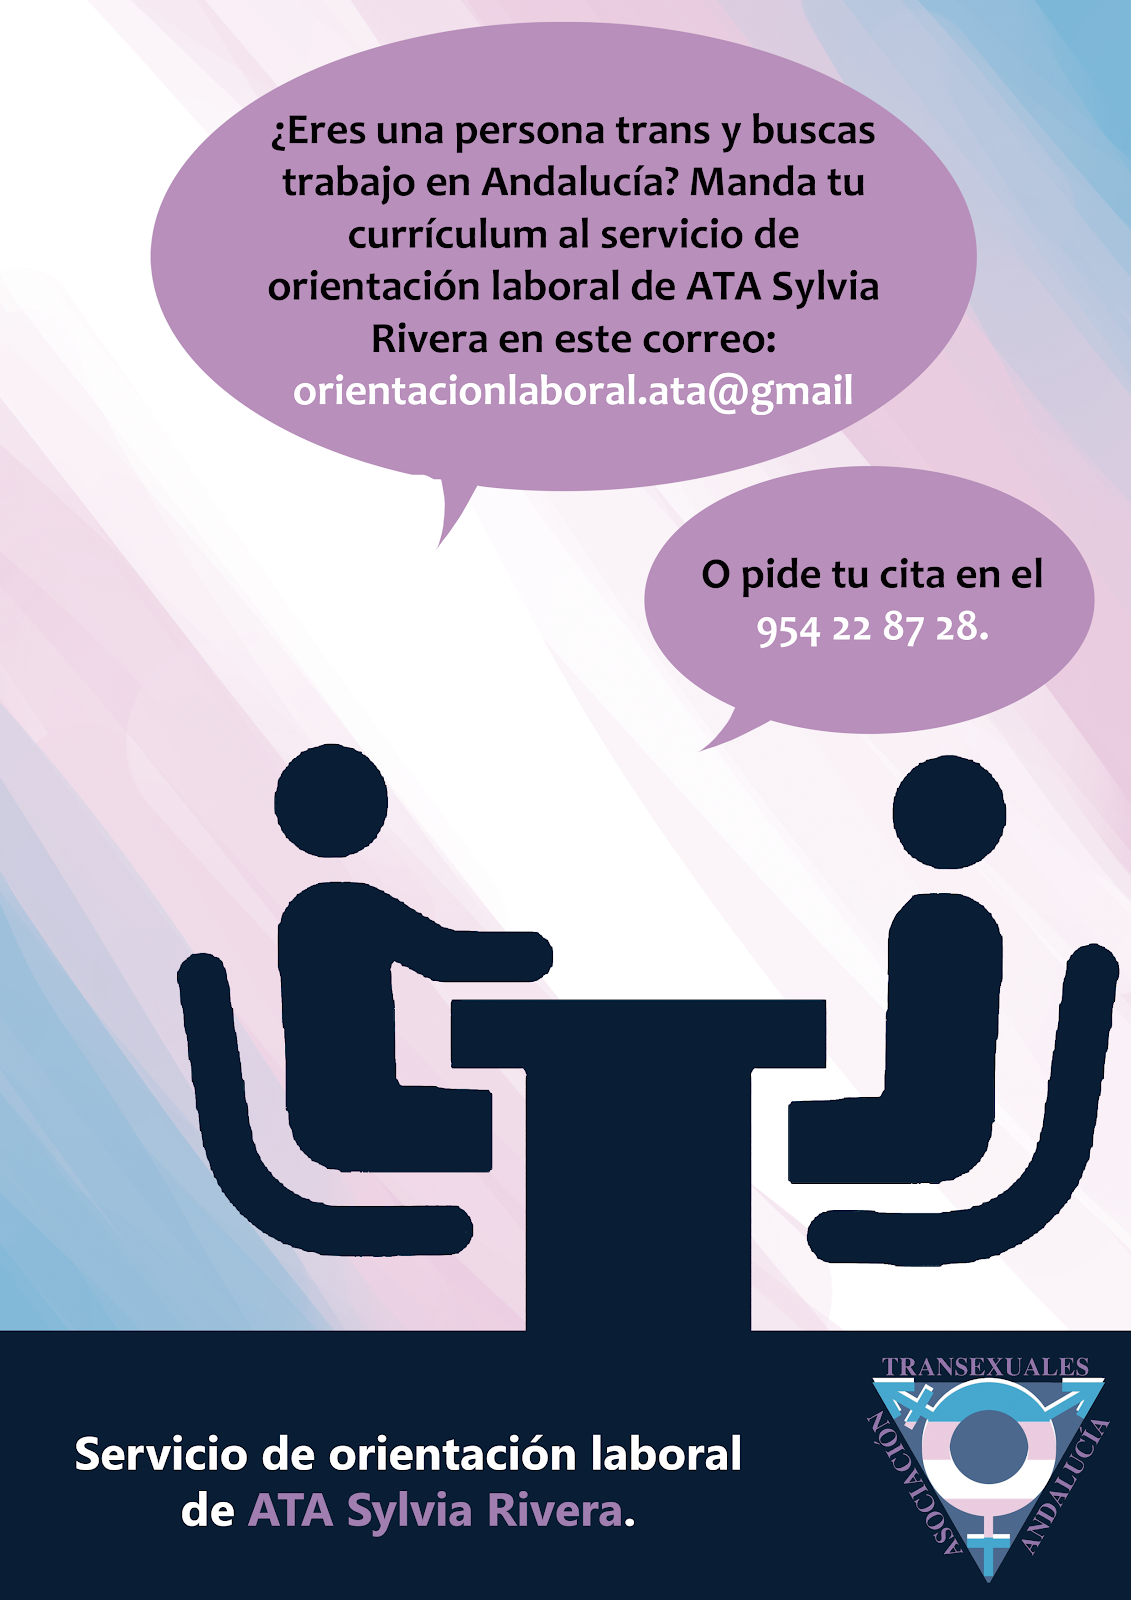 SERVICIO DE ORIENTACIÓN LABORAL A PERSONAS TRANS